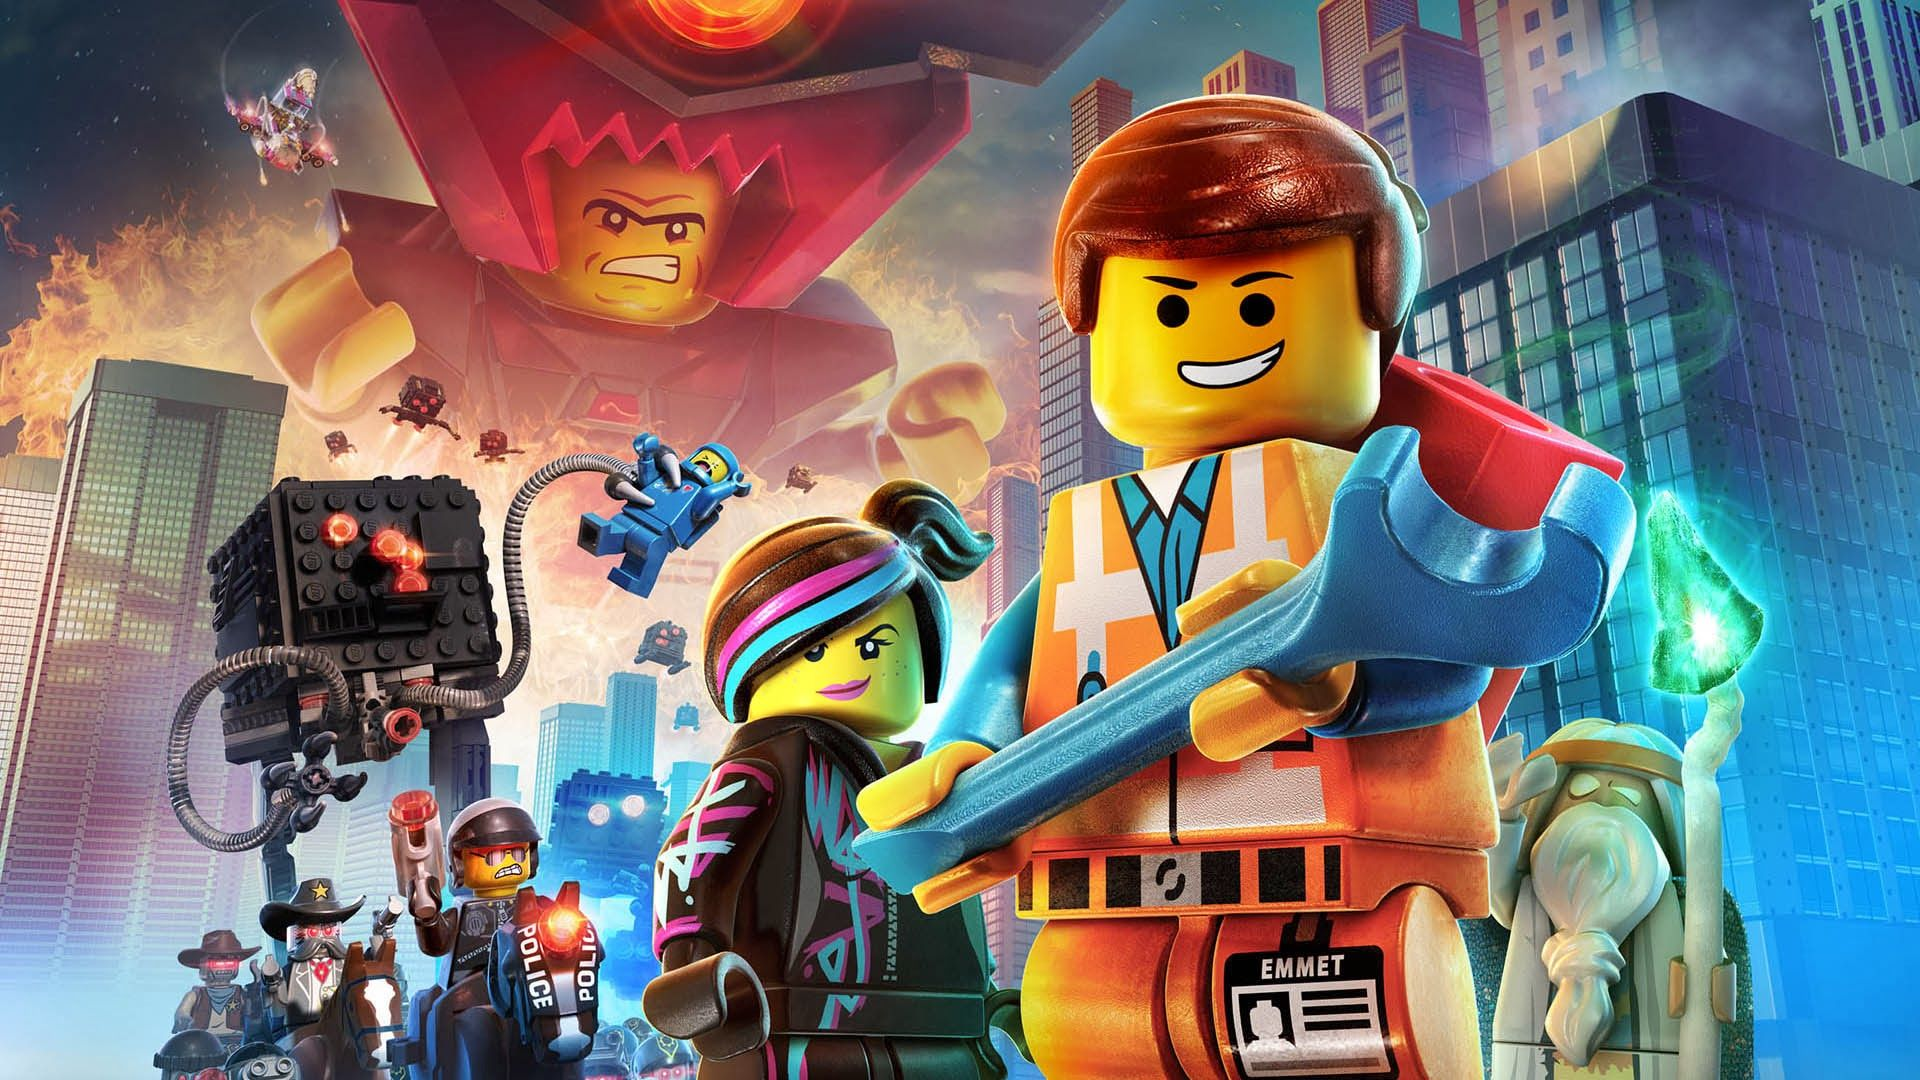 Lego Movie Wallpapers Top Free Lego Movie Backgrounds Wallpaperaccess